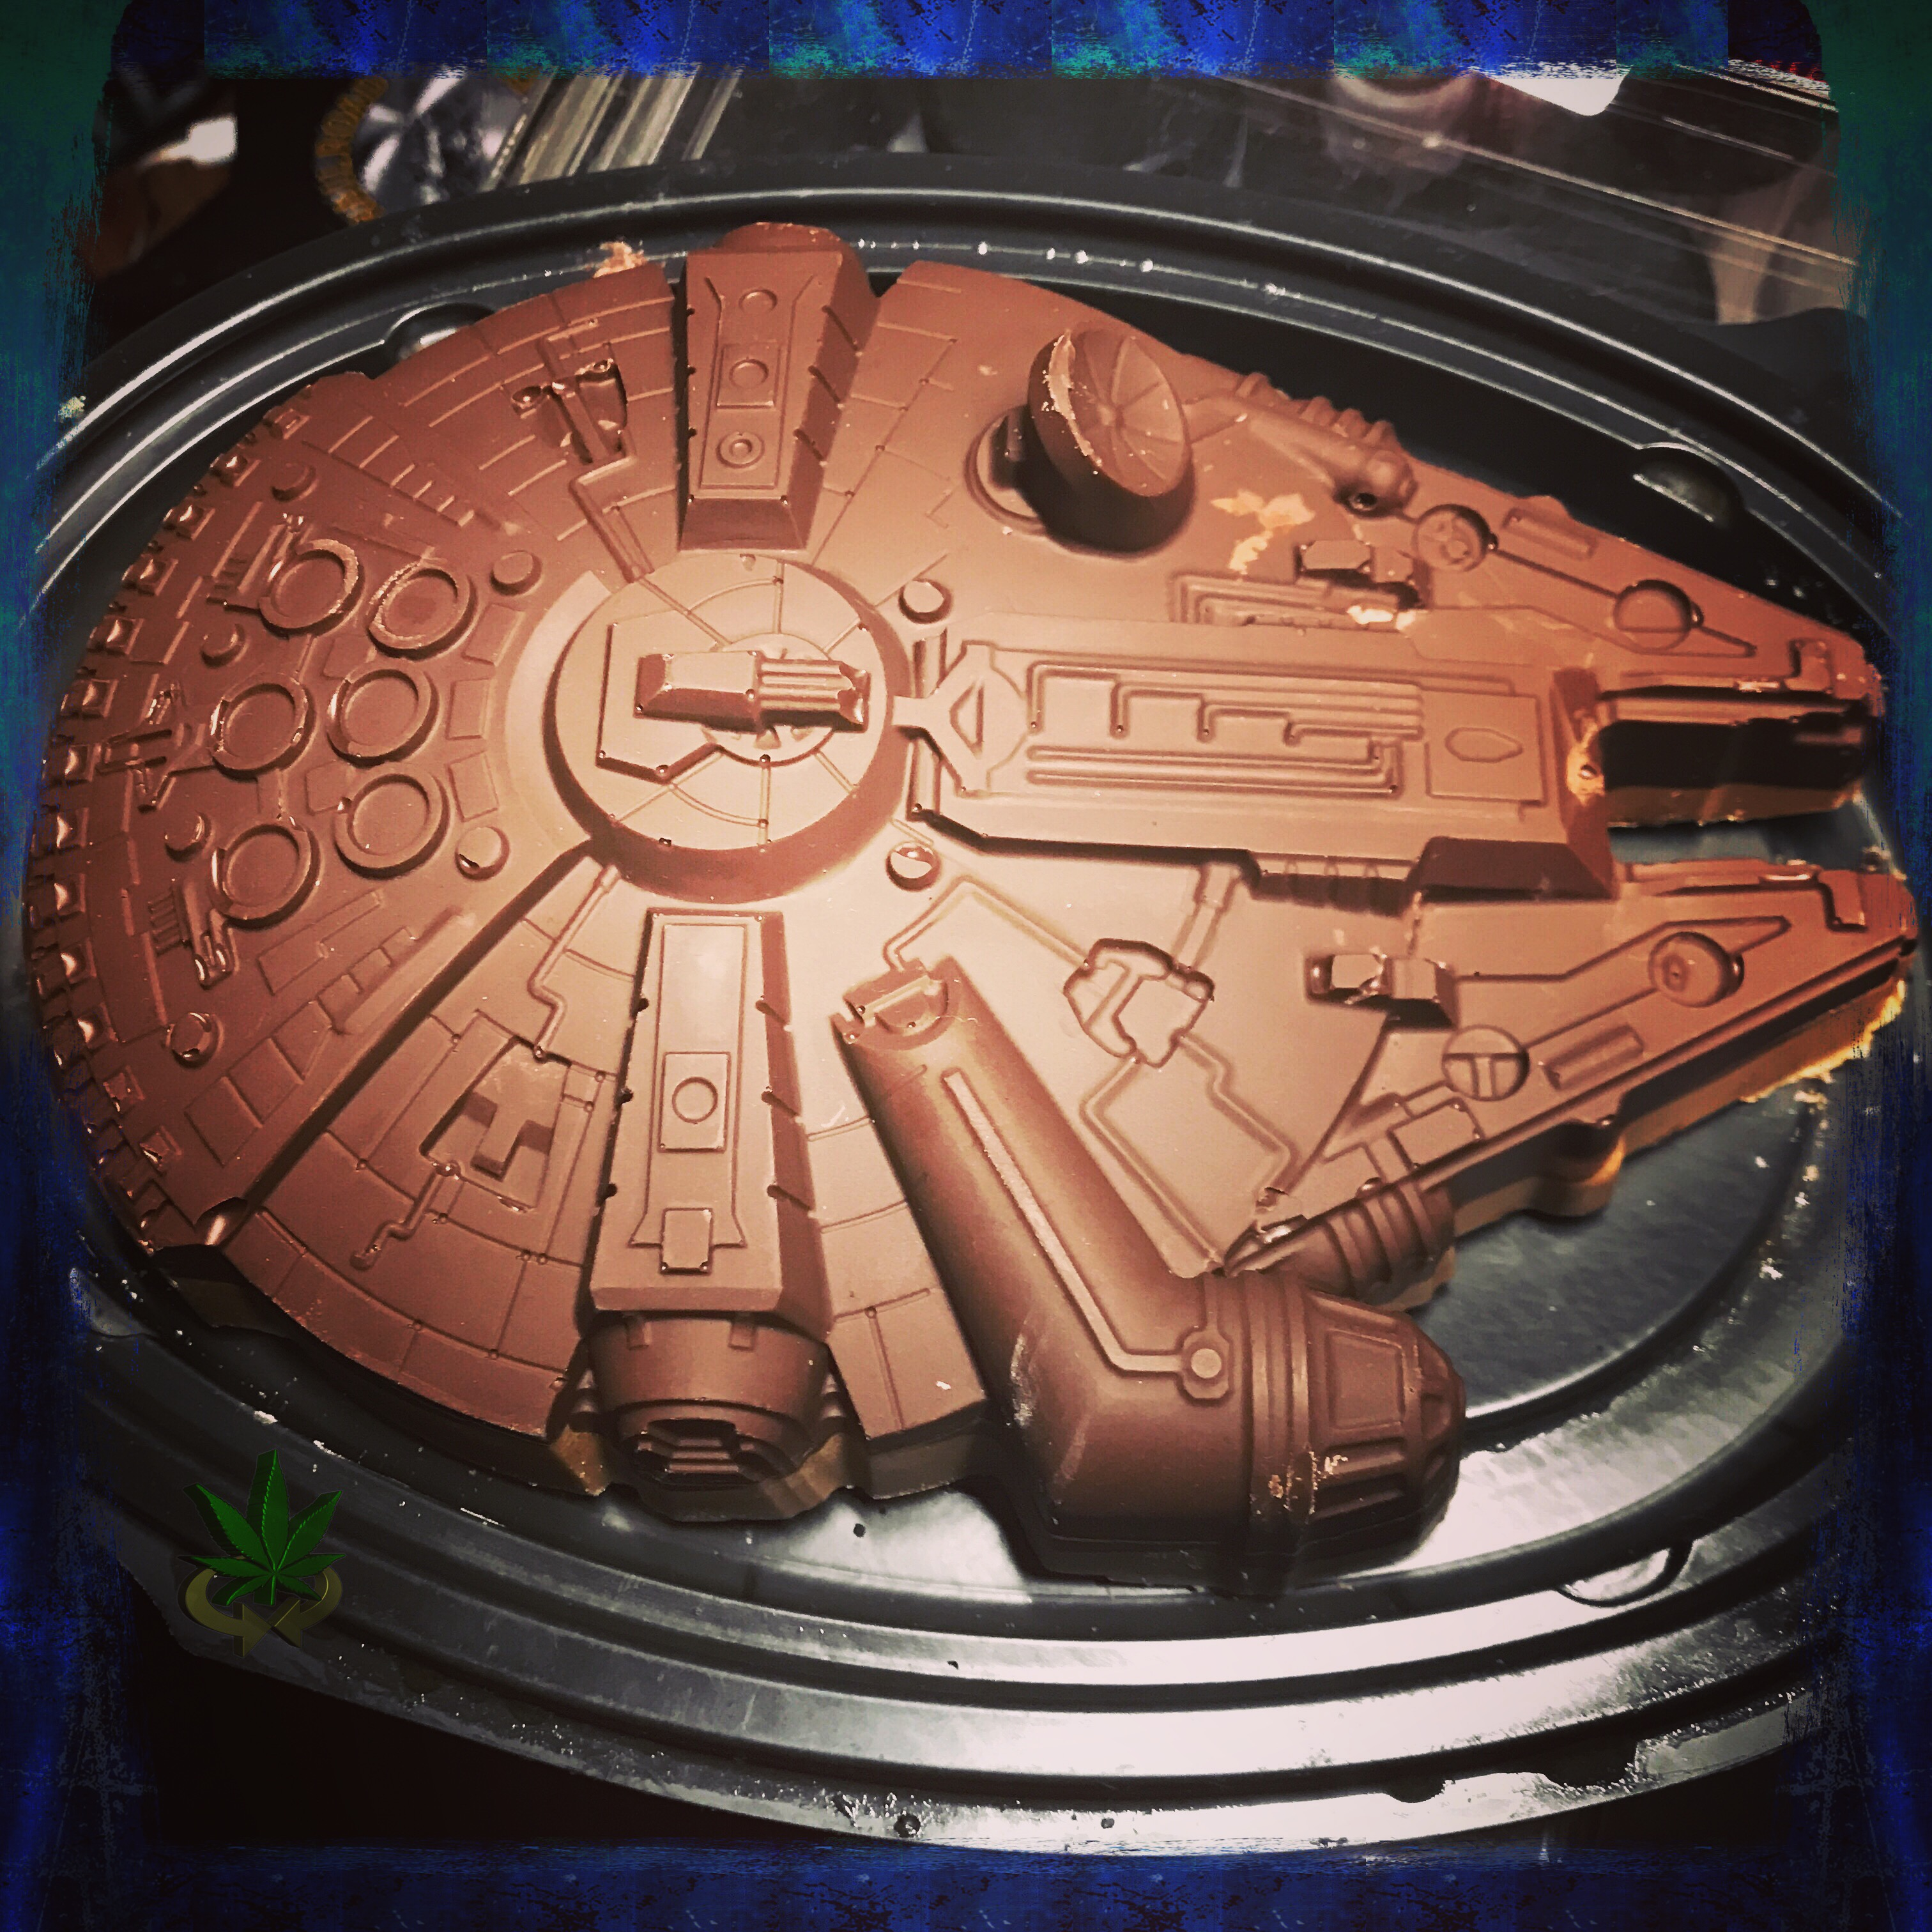 Medicated Millennium Falcon